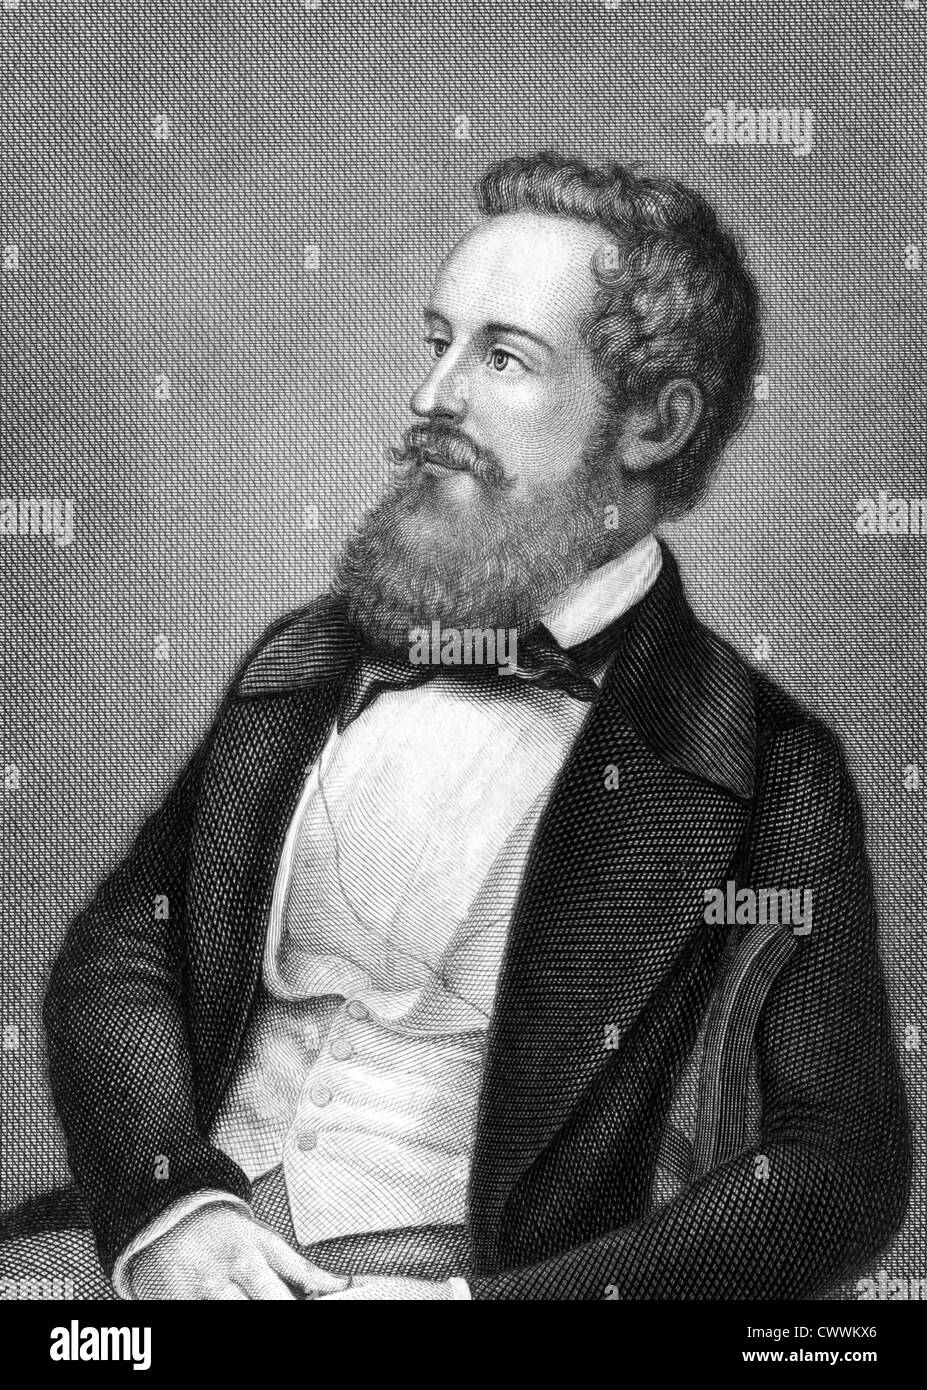 Franz Schuselka (1811-1886) on engraving from 1859. Politician of the Austrian Empire. - Stock Image